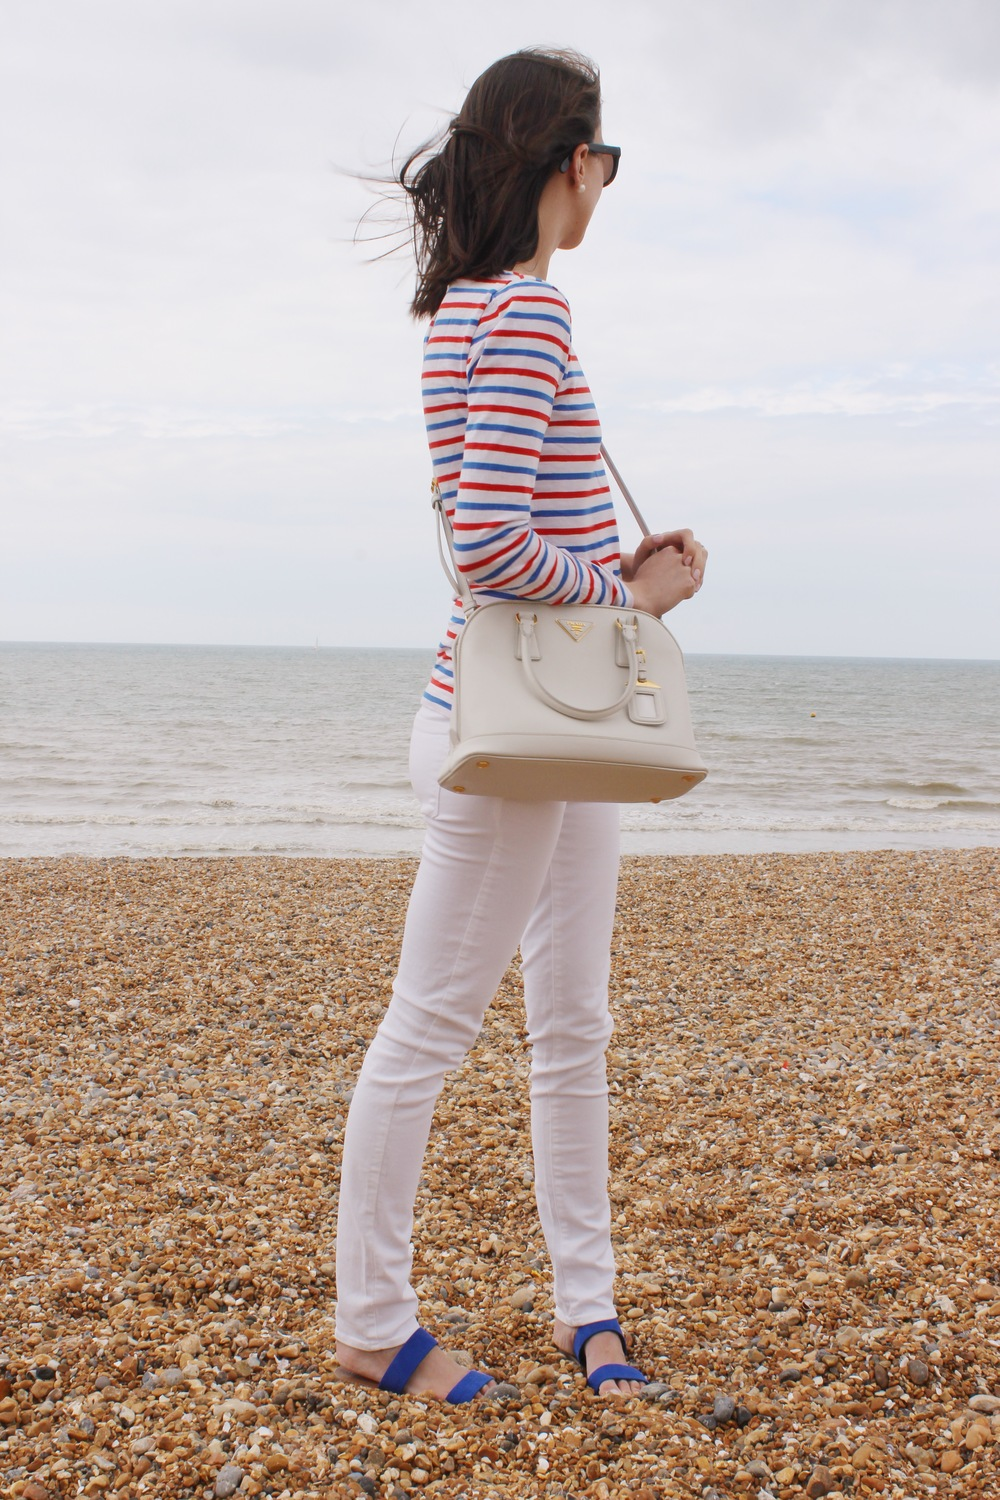 Admiring the views at Brighton Beach wearing red, white and blue.